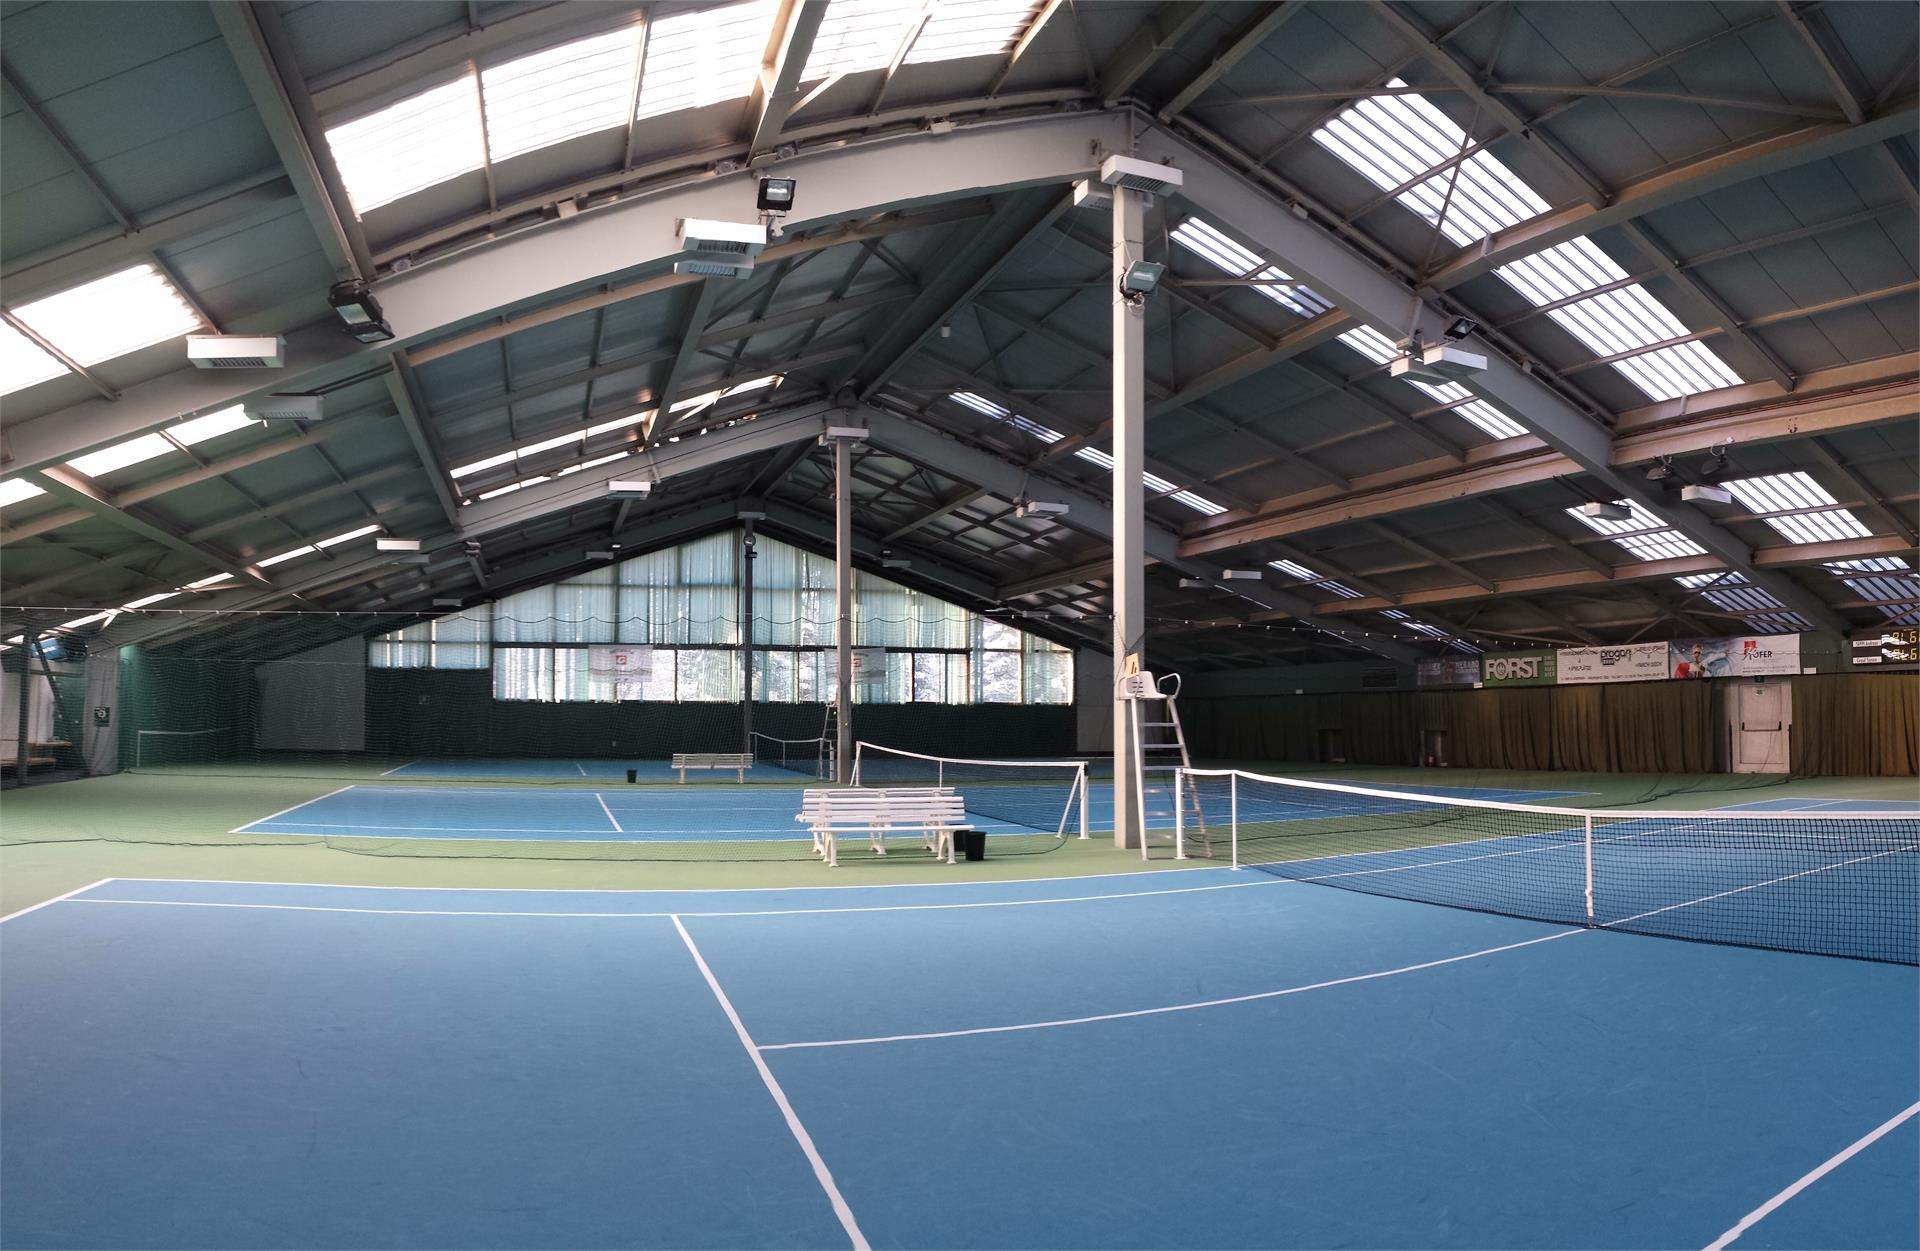 Tennis Center St. Ulrich